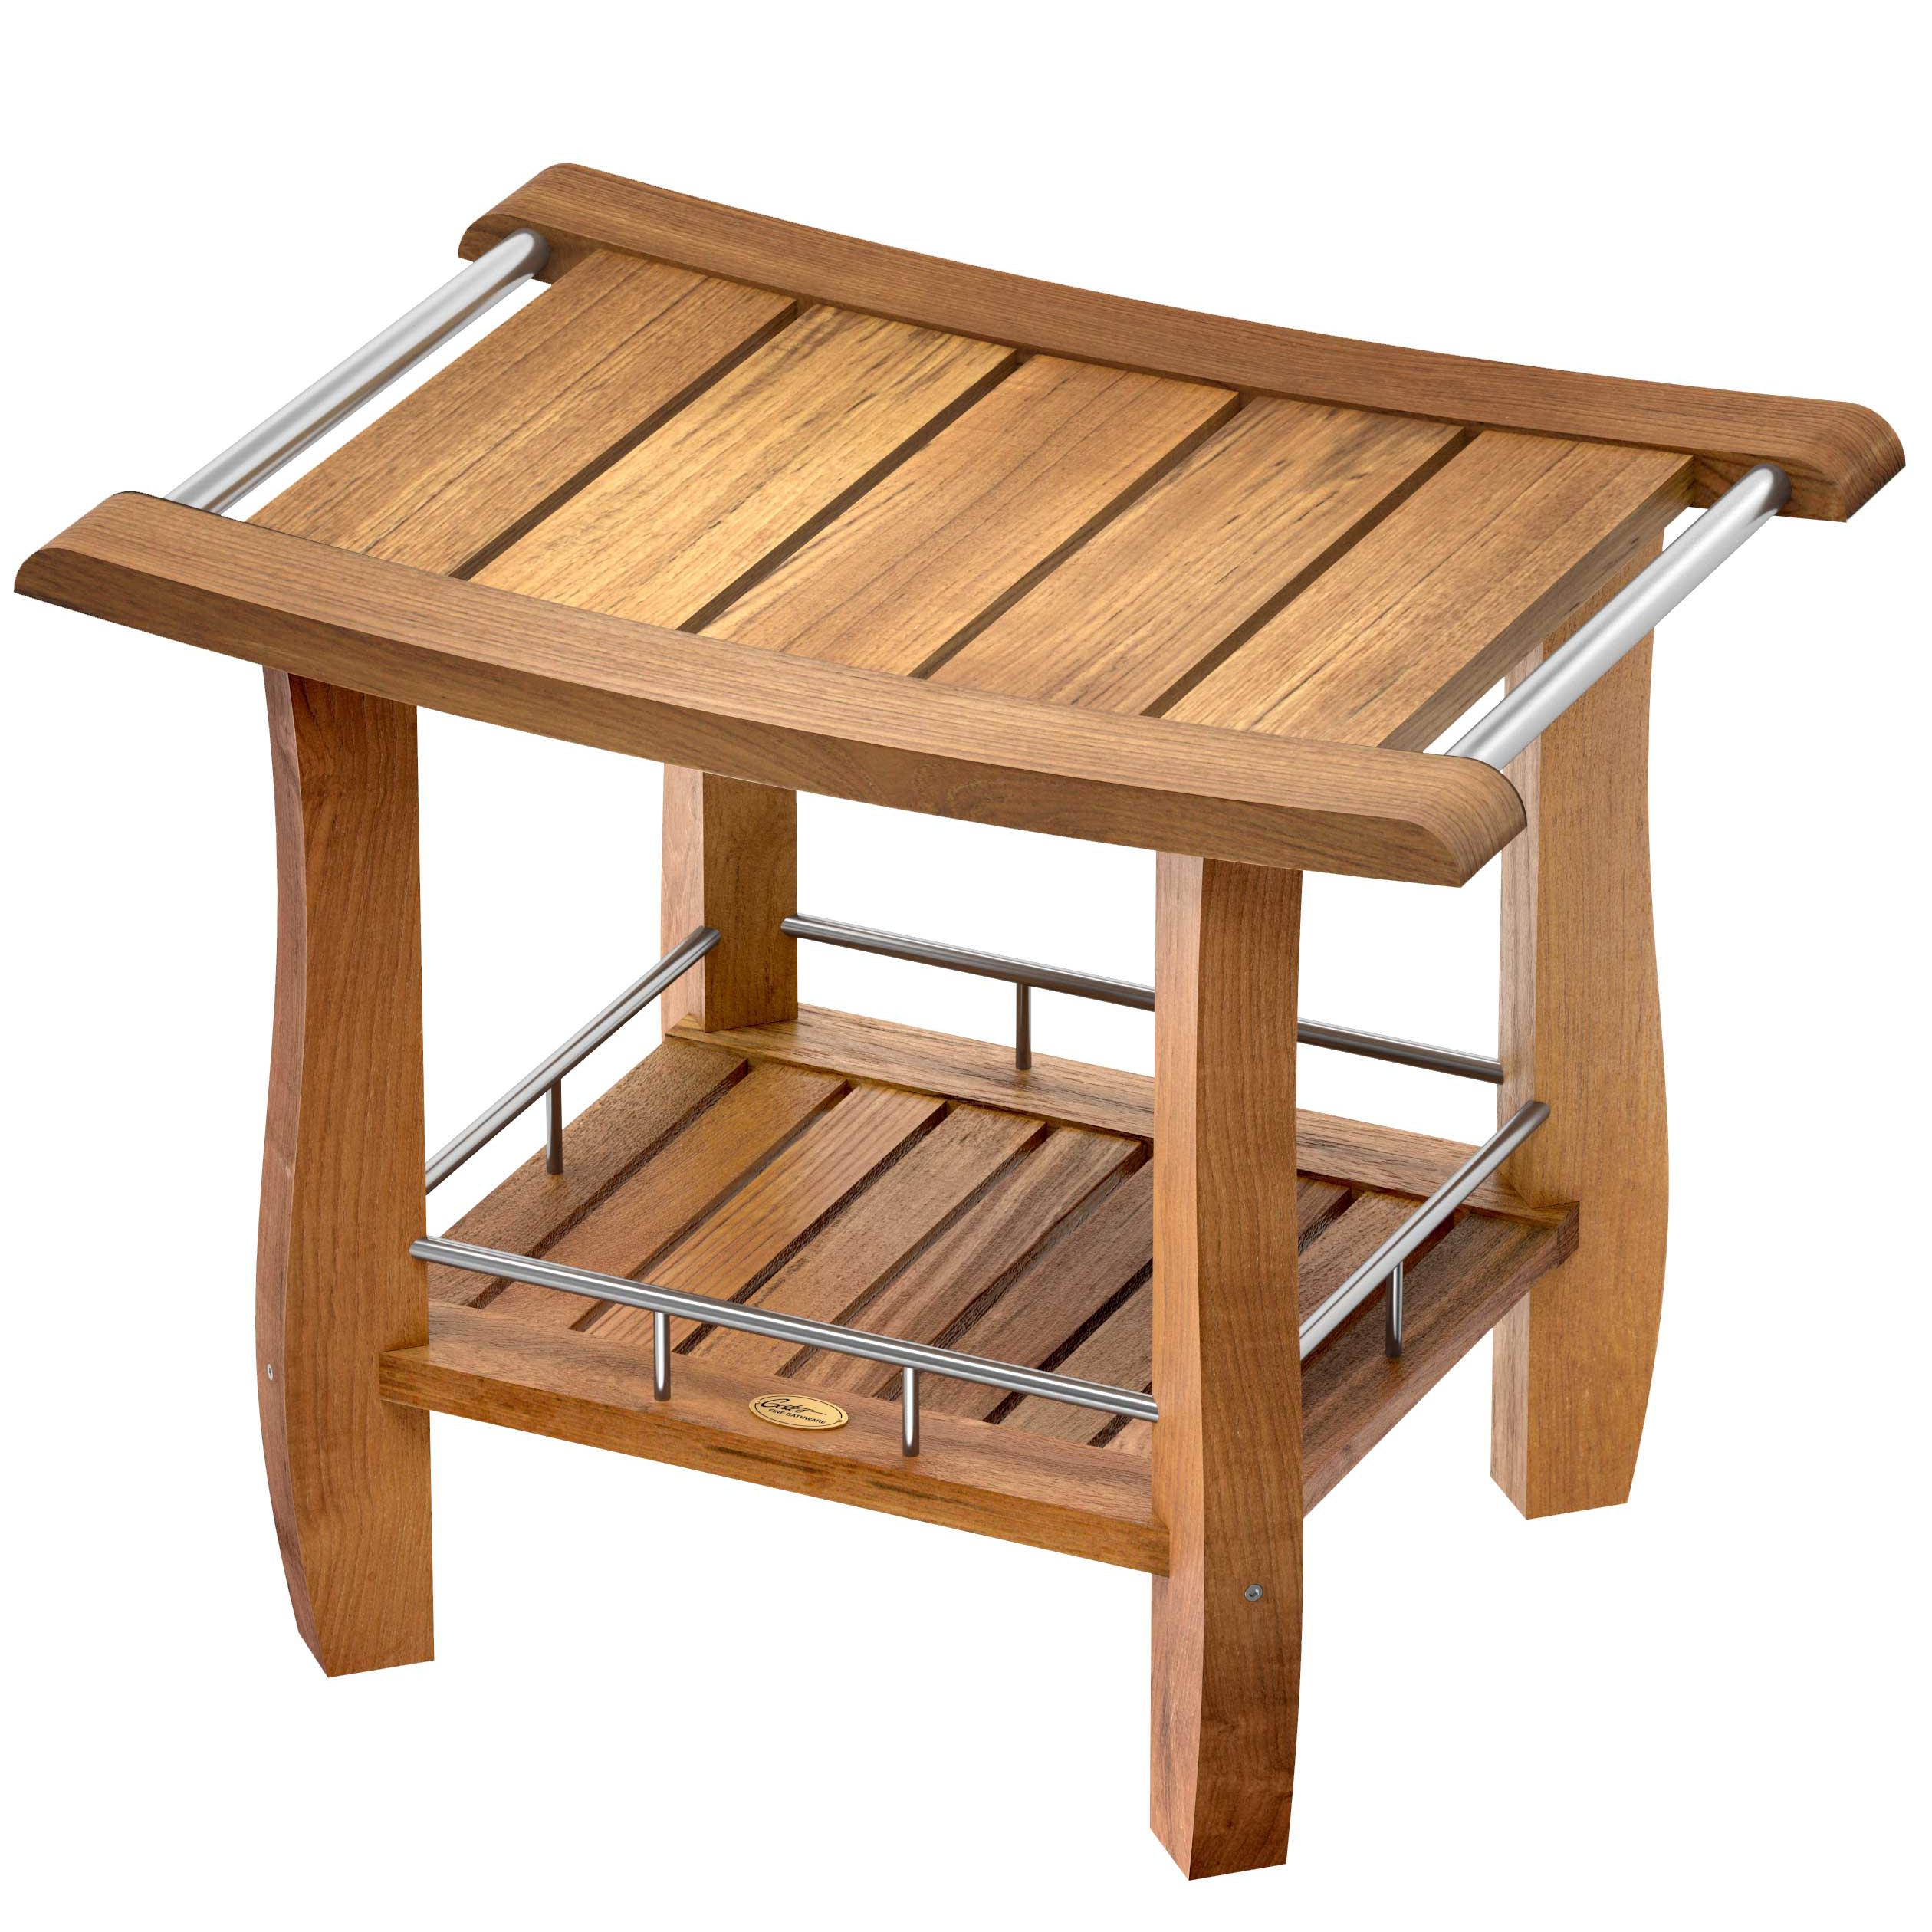 Gatco 1921 Teak Fully Assembled Rectangle Shower Bench with Storage ...